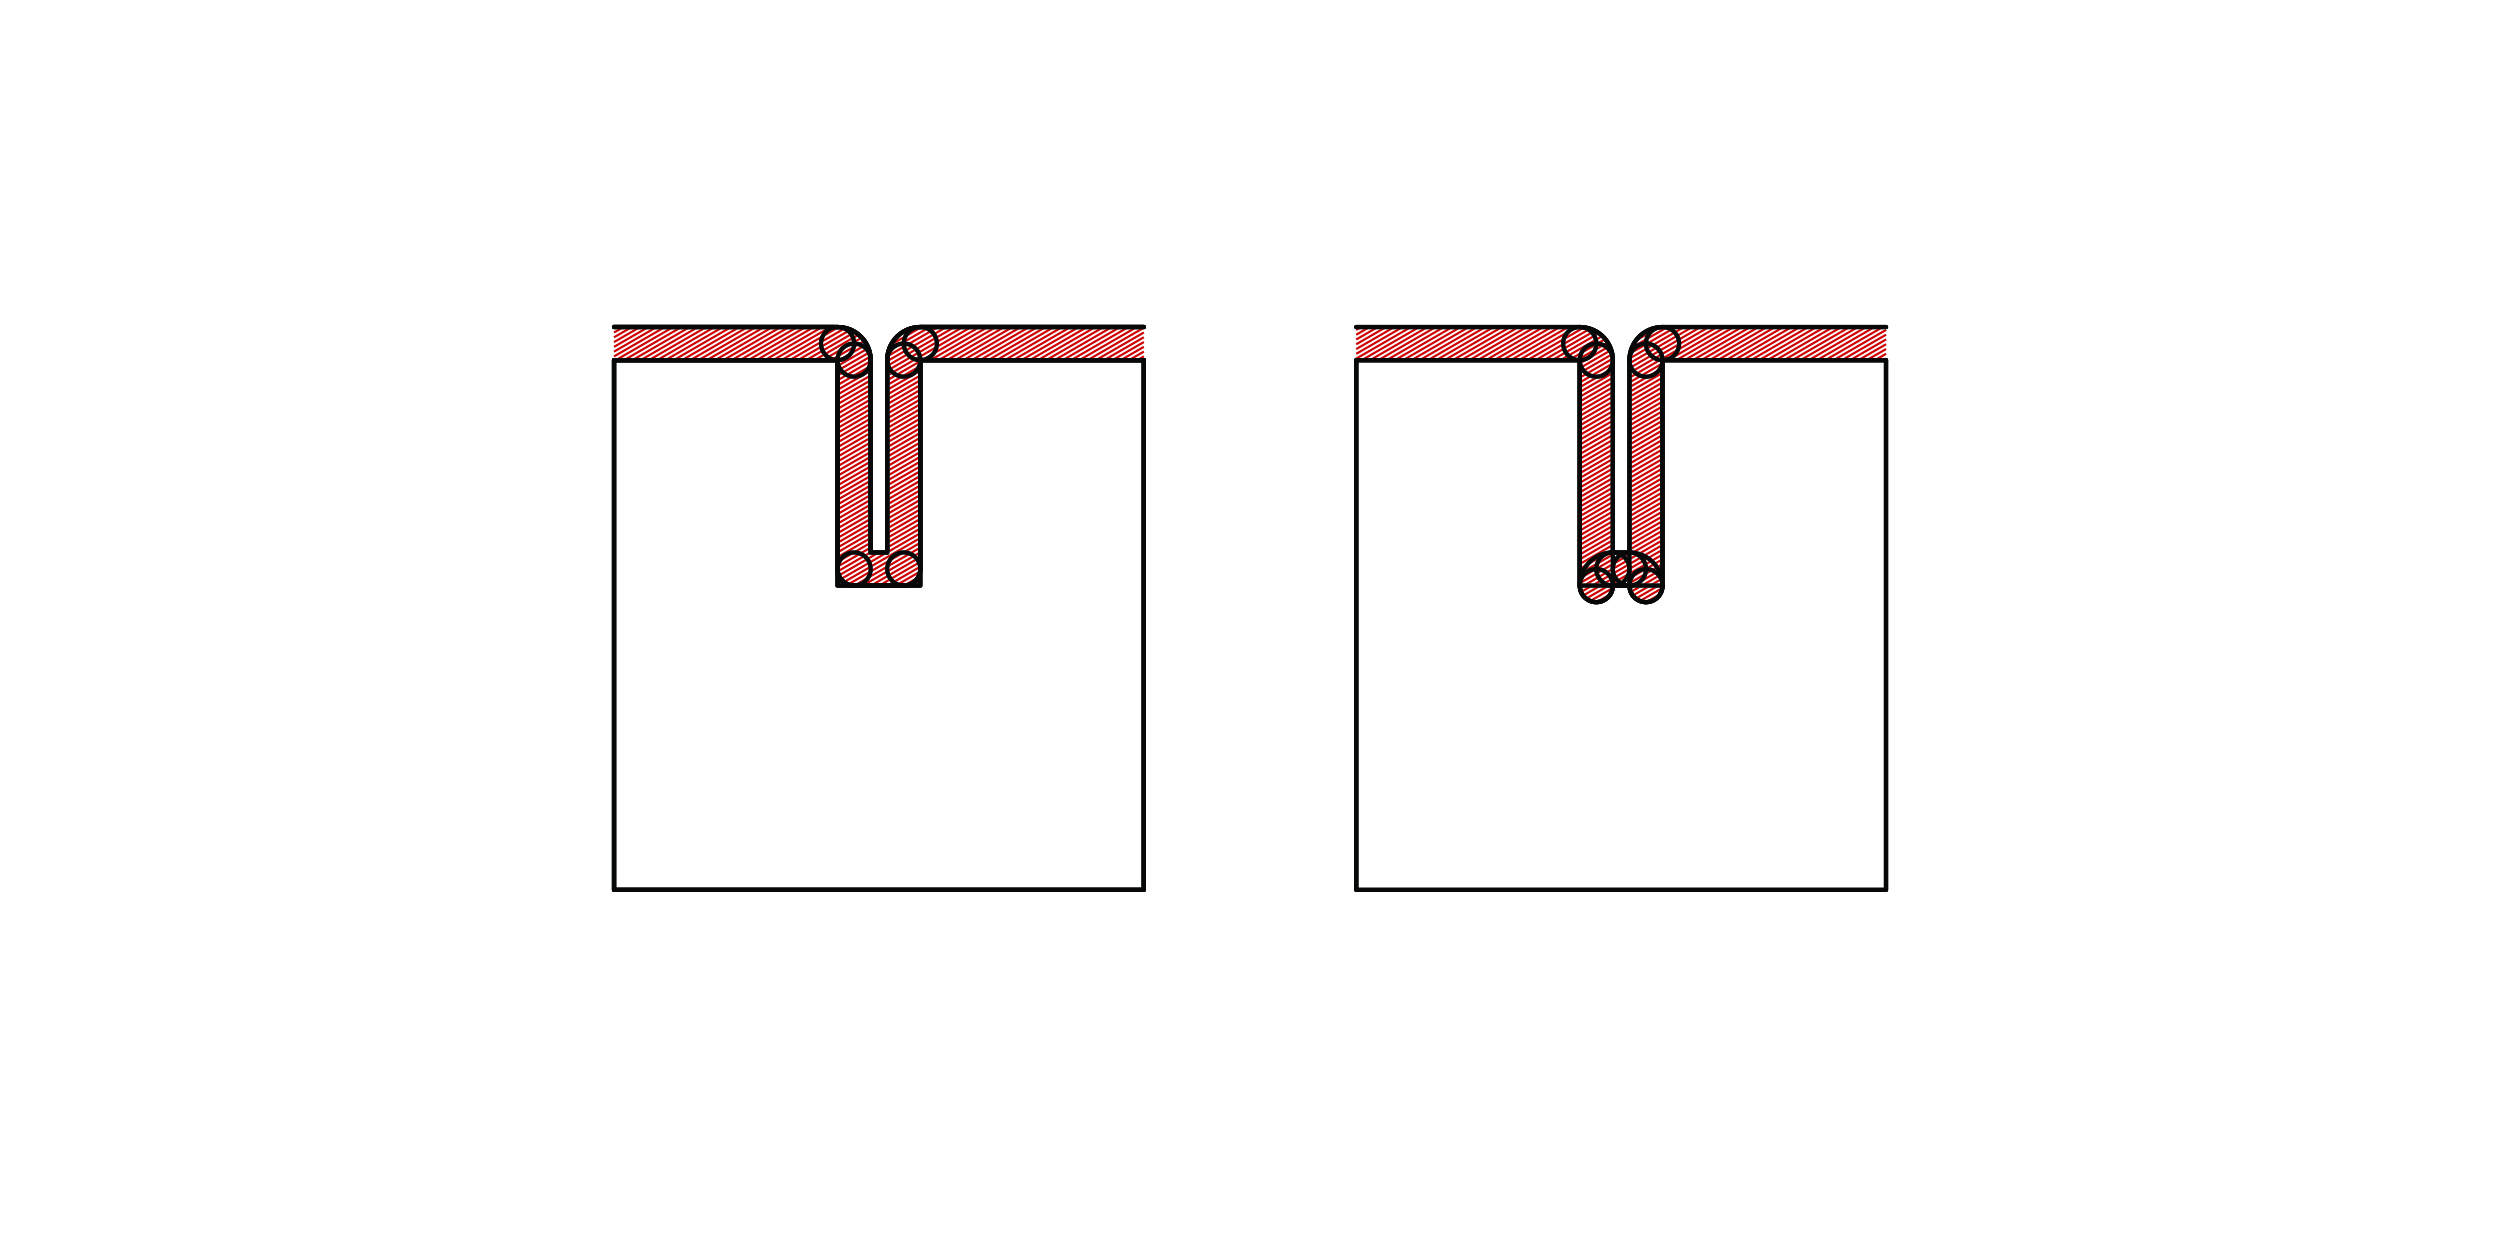 We will then select the tool you've allowed for when we program the CNC machine. The red area shows the path the tool will take based on the supplied geometry.